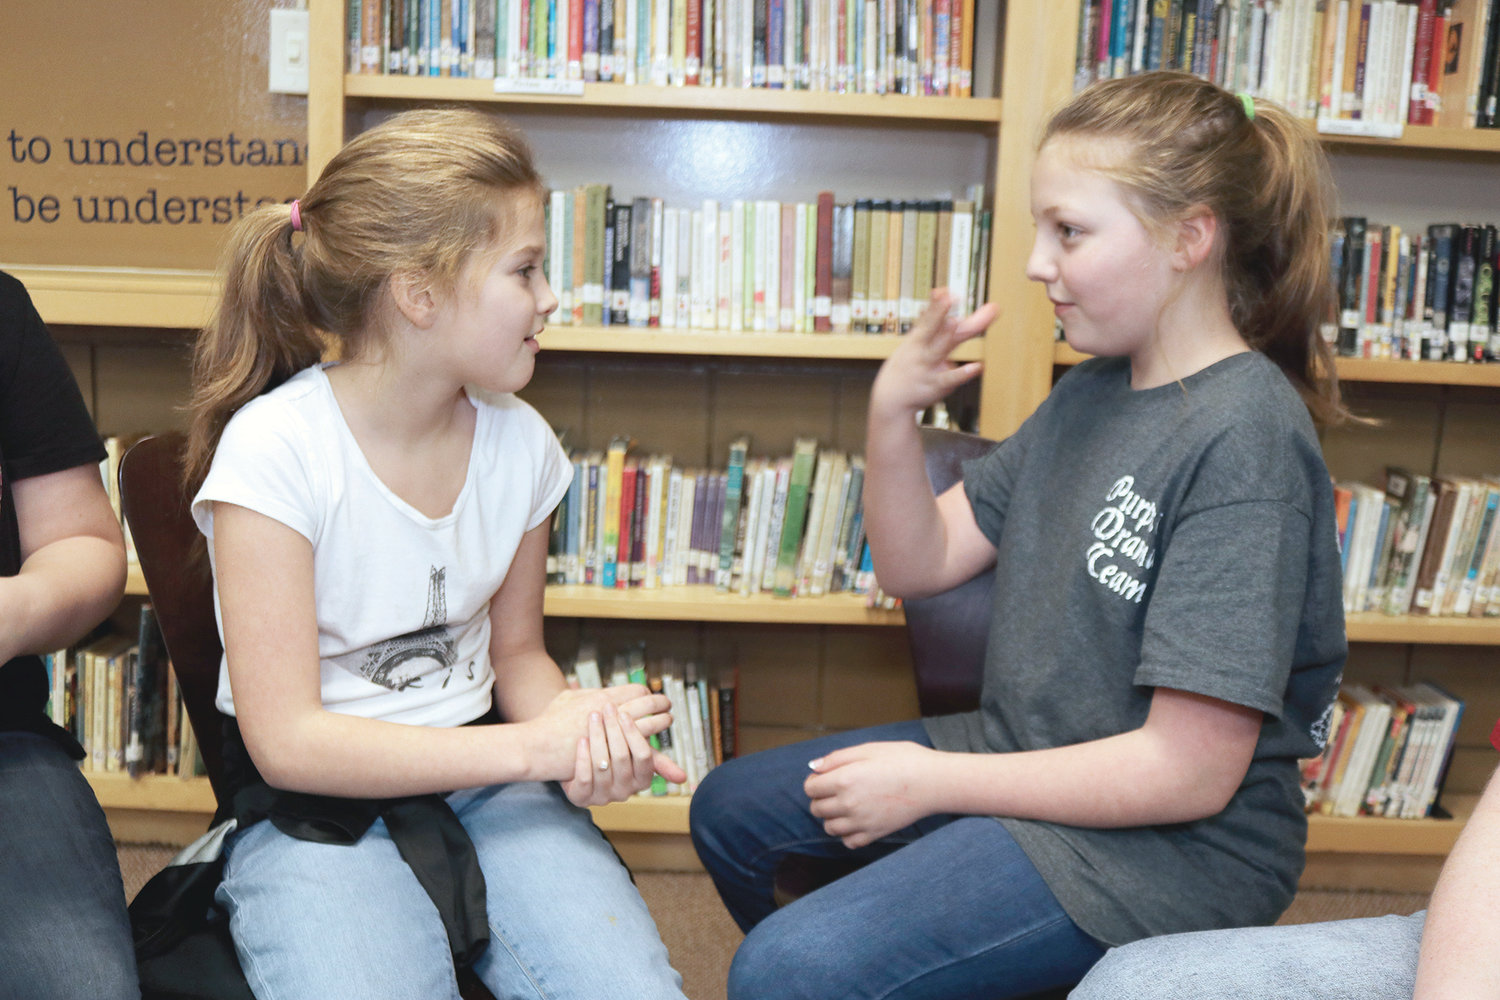 Sarah Wilkinson and Briley Adams communicate with sign language in the library at Sumiton Middle School. The two are members of the American Sign Language Club at the school.